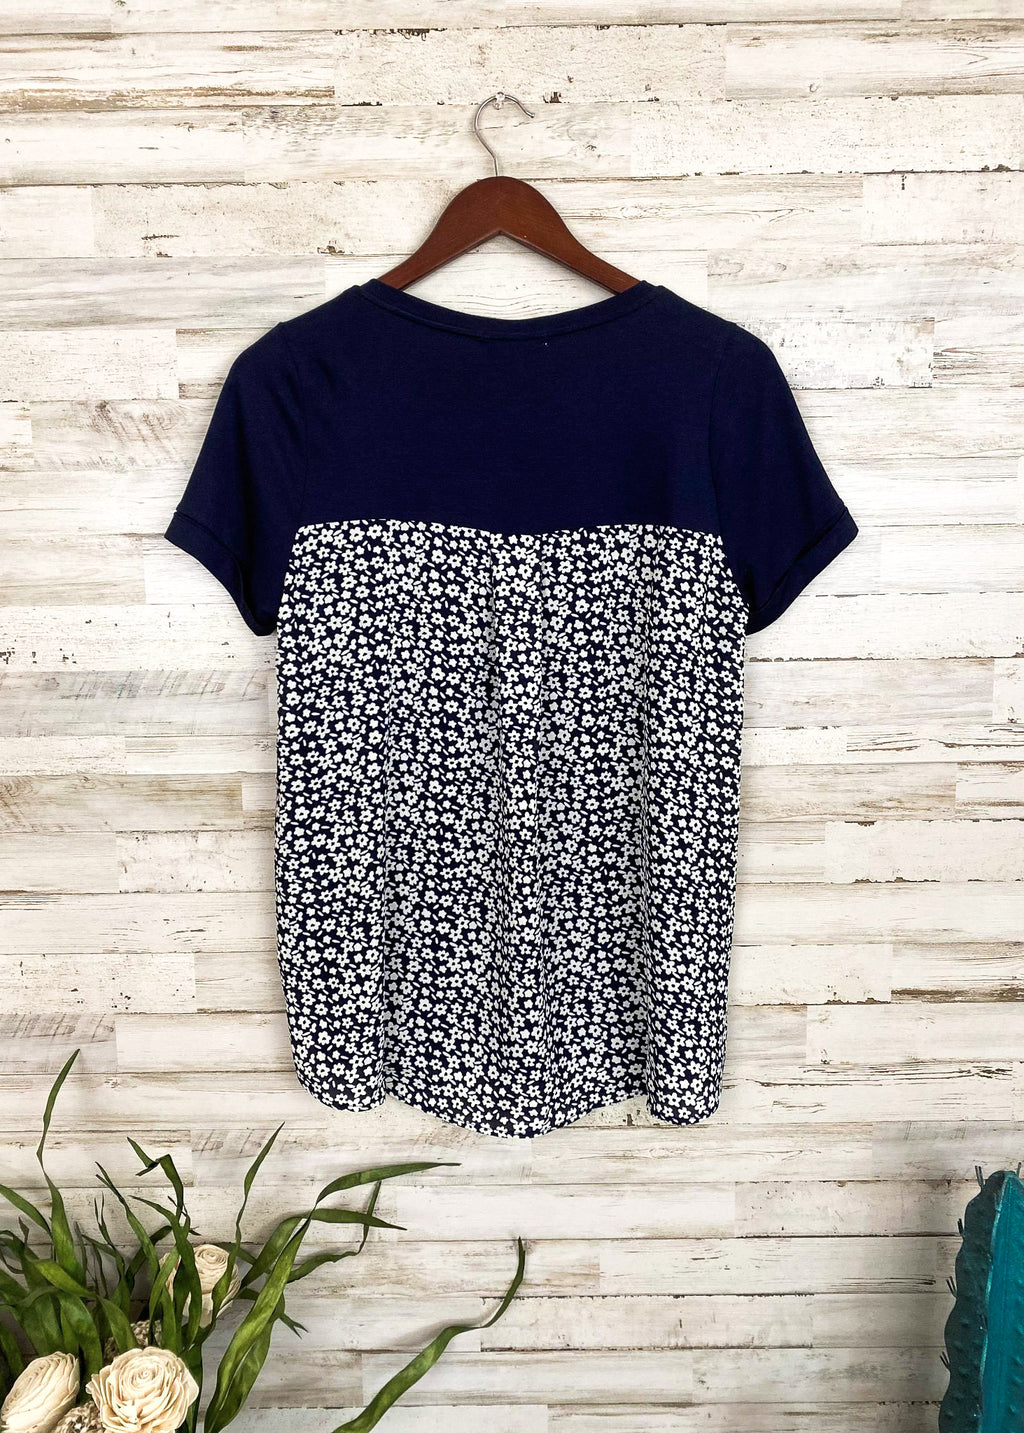 Navy Daisy Short Sleeve Top